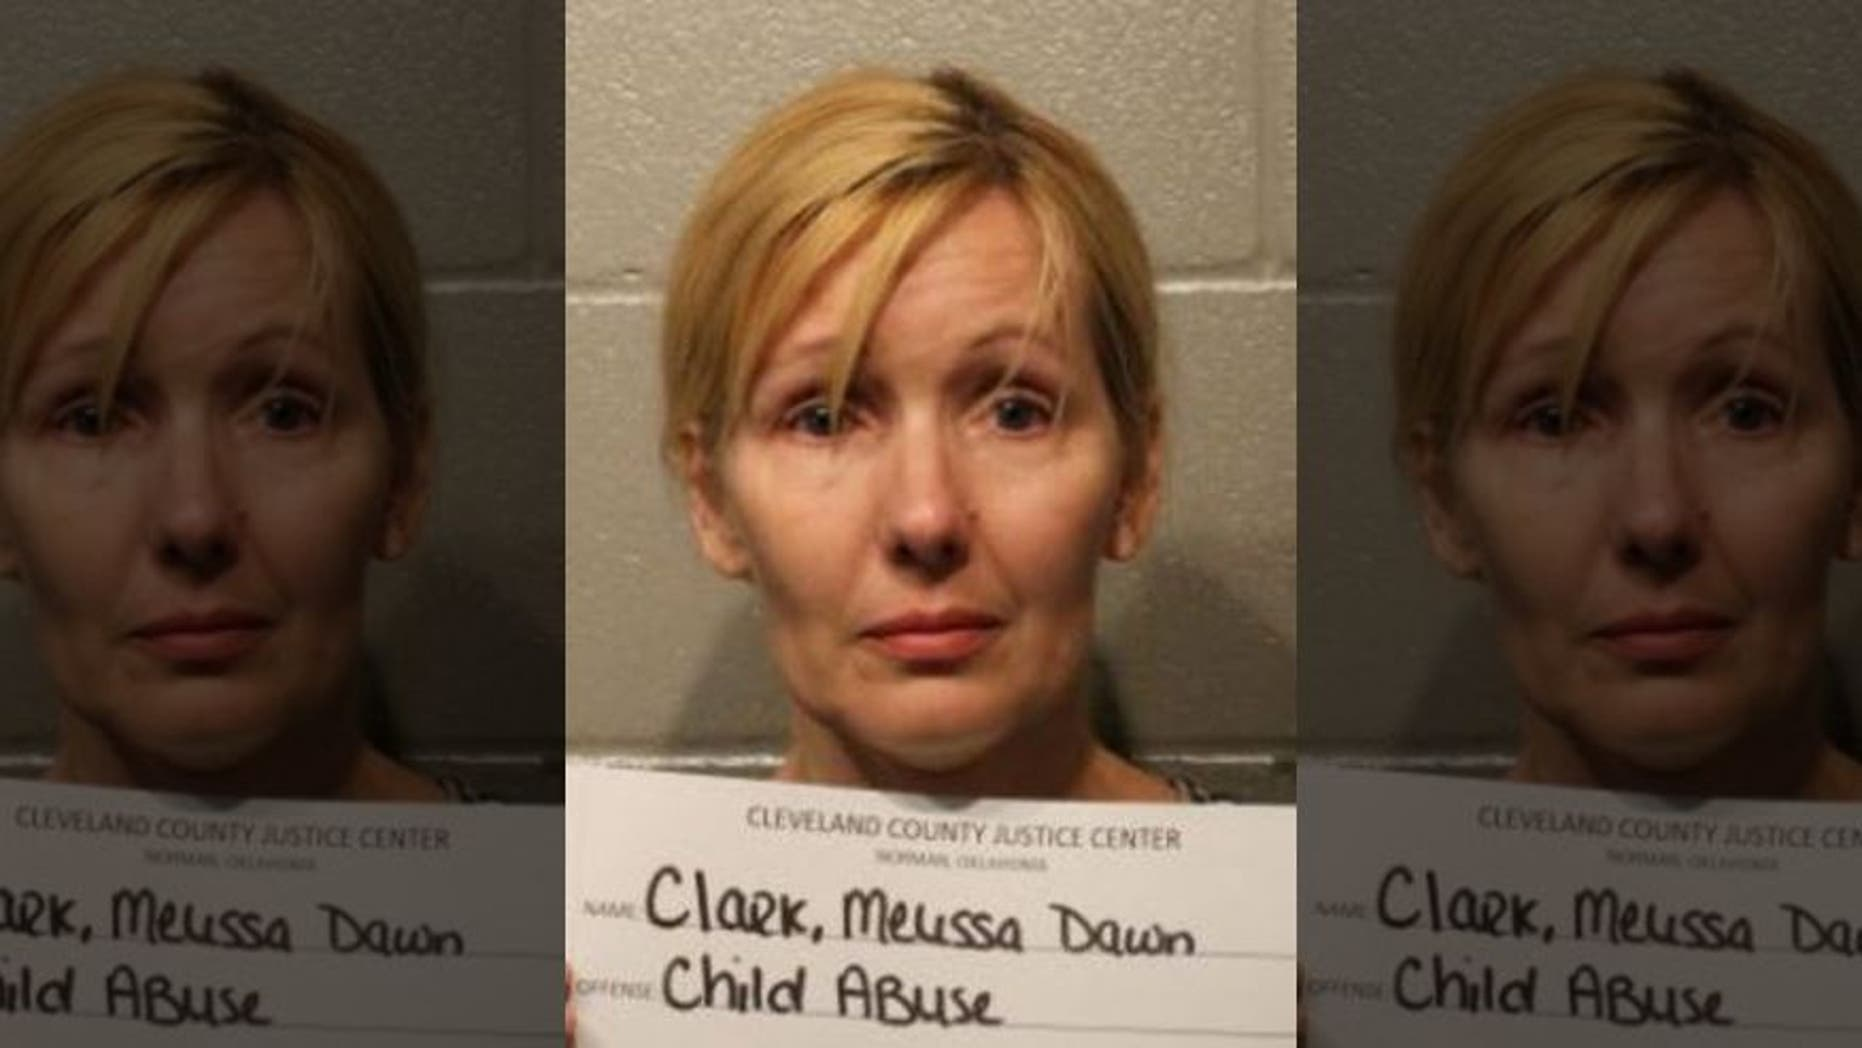 Oklahoma day care owner Melissa Dawn Clark was convicted Thursday of first-degree murder in the death of an infant left in her care.